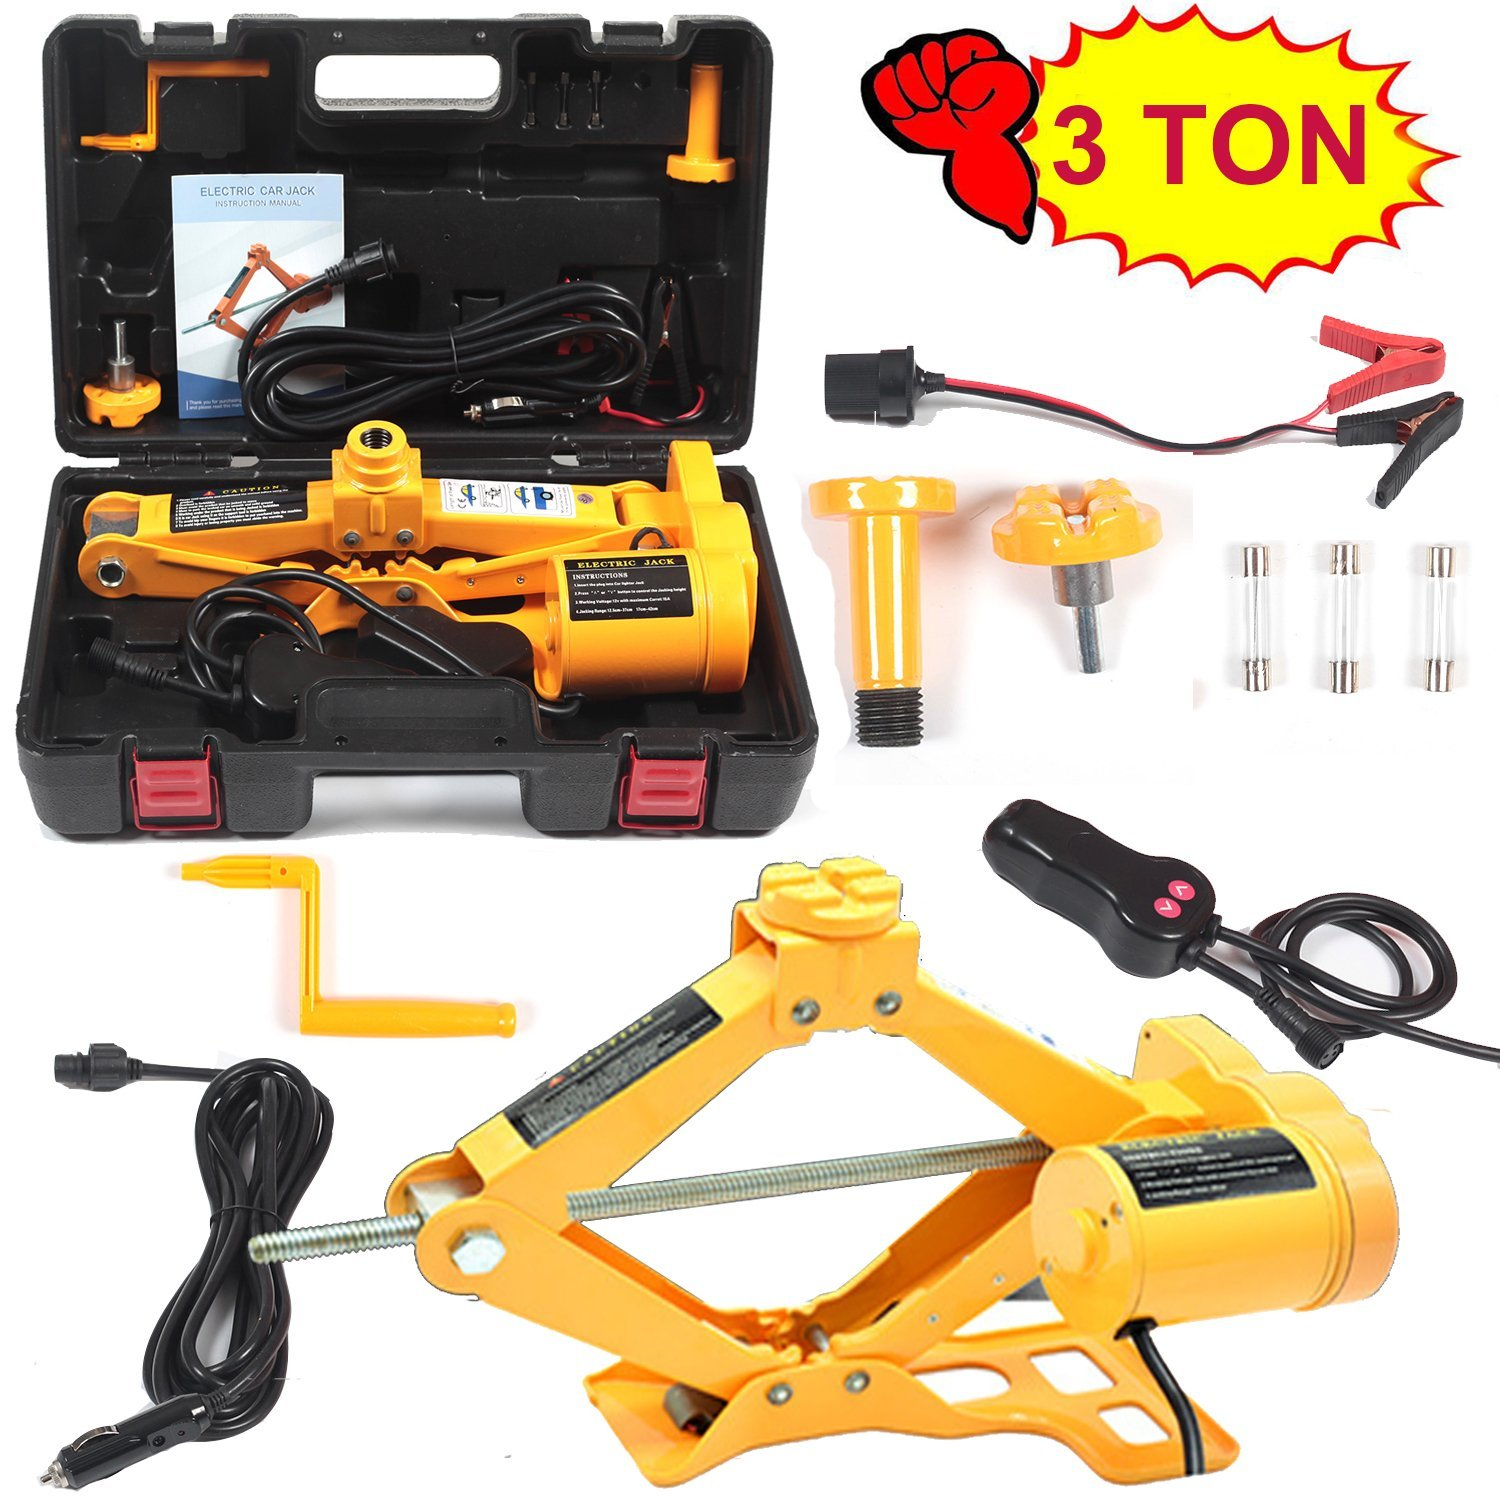 Electric Car Floor Jack 3 Ton All-in-one Automatic 12V Scissor Lift Jack Set for Sedans SUV w/Double Saddles Remote Hydraulic Tire Change Repair Emergency Tool Kits Vehicle Floor Jack Wheel Change